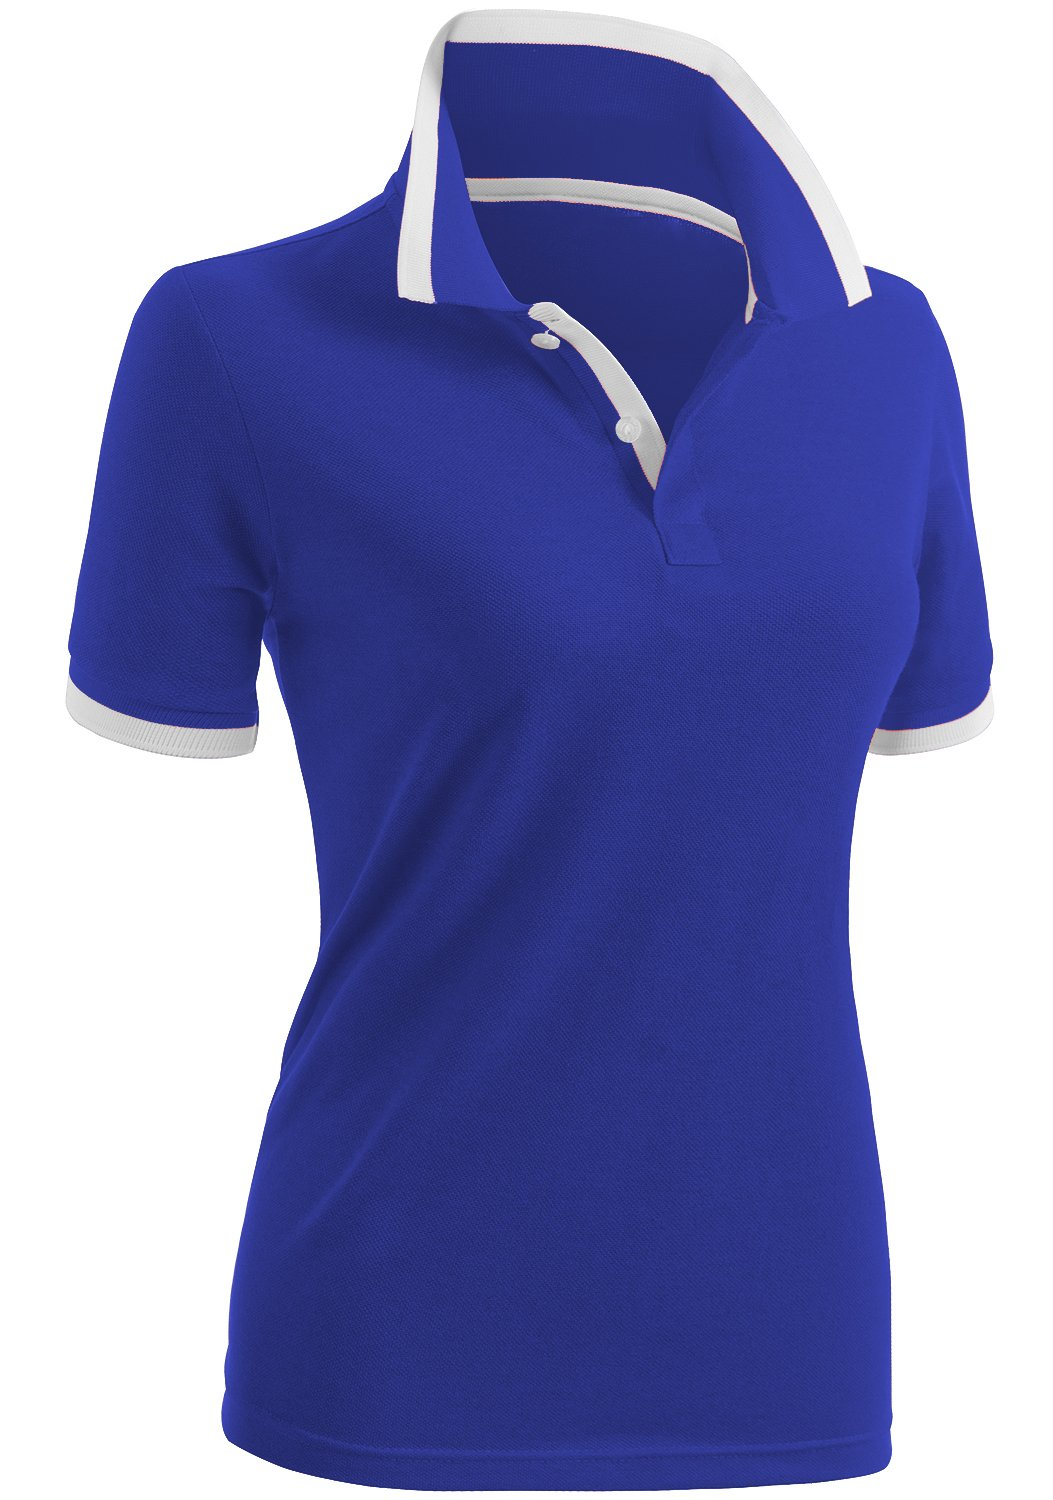 CLOVERY Women's Casual Design Short Sleeve PK Polo Shirts Cobalt US M/Tag M